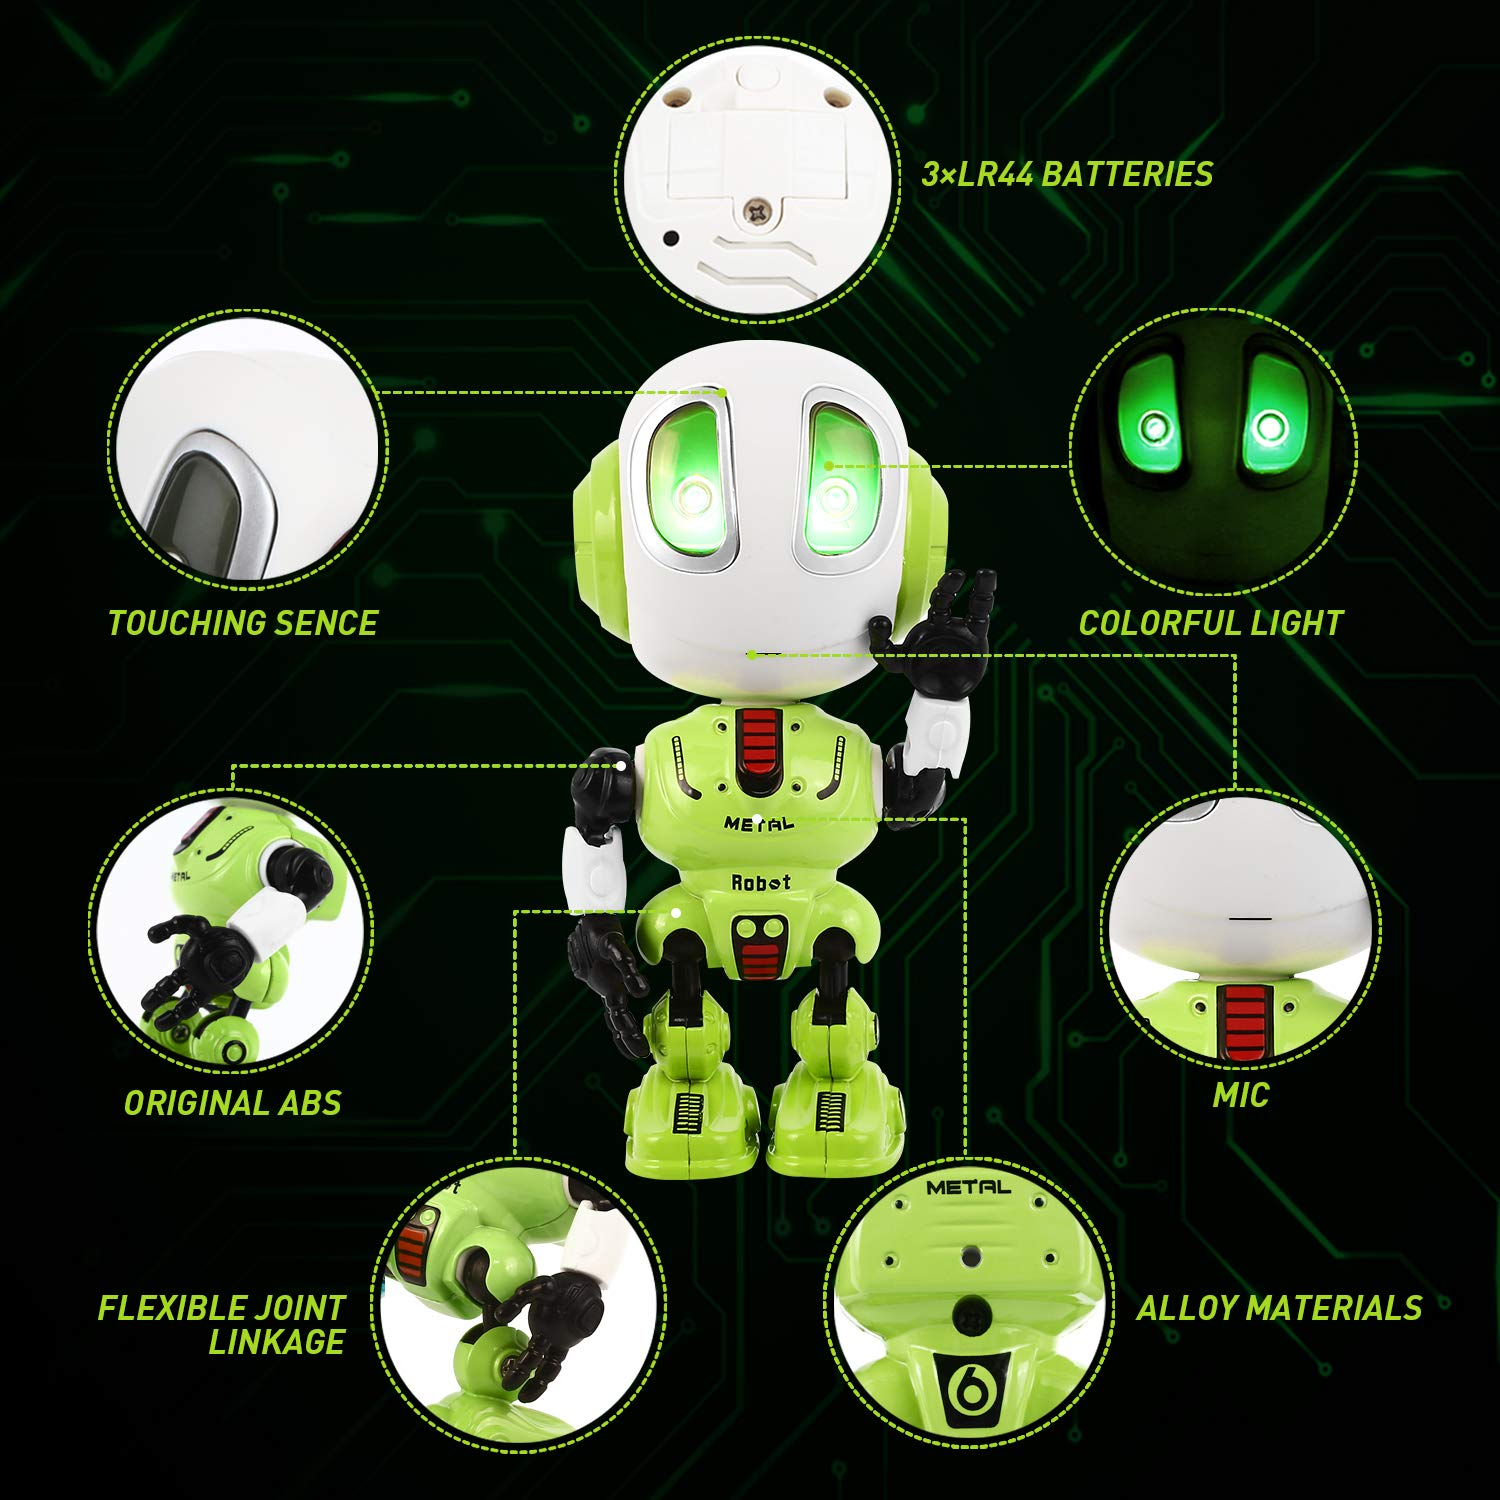 Peradix Recording Talking Robot Toys for Boys& Girls little Kids Robot model Lighting and Sound, Education Toys For Toddlers Children Birthday Presents Gifts for Aged 3-12 Years Old (Green)